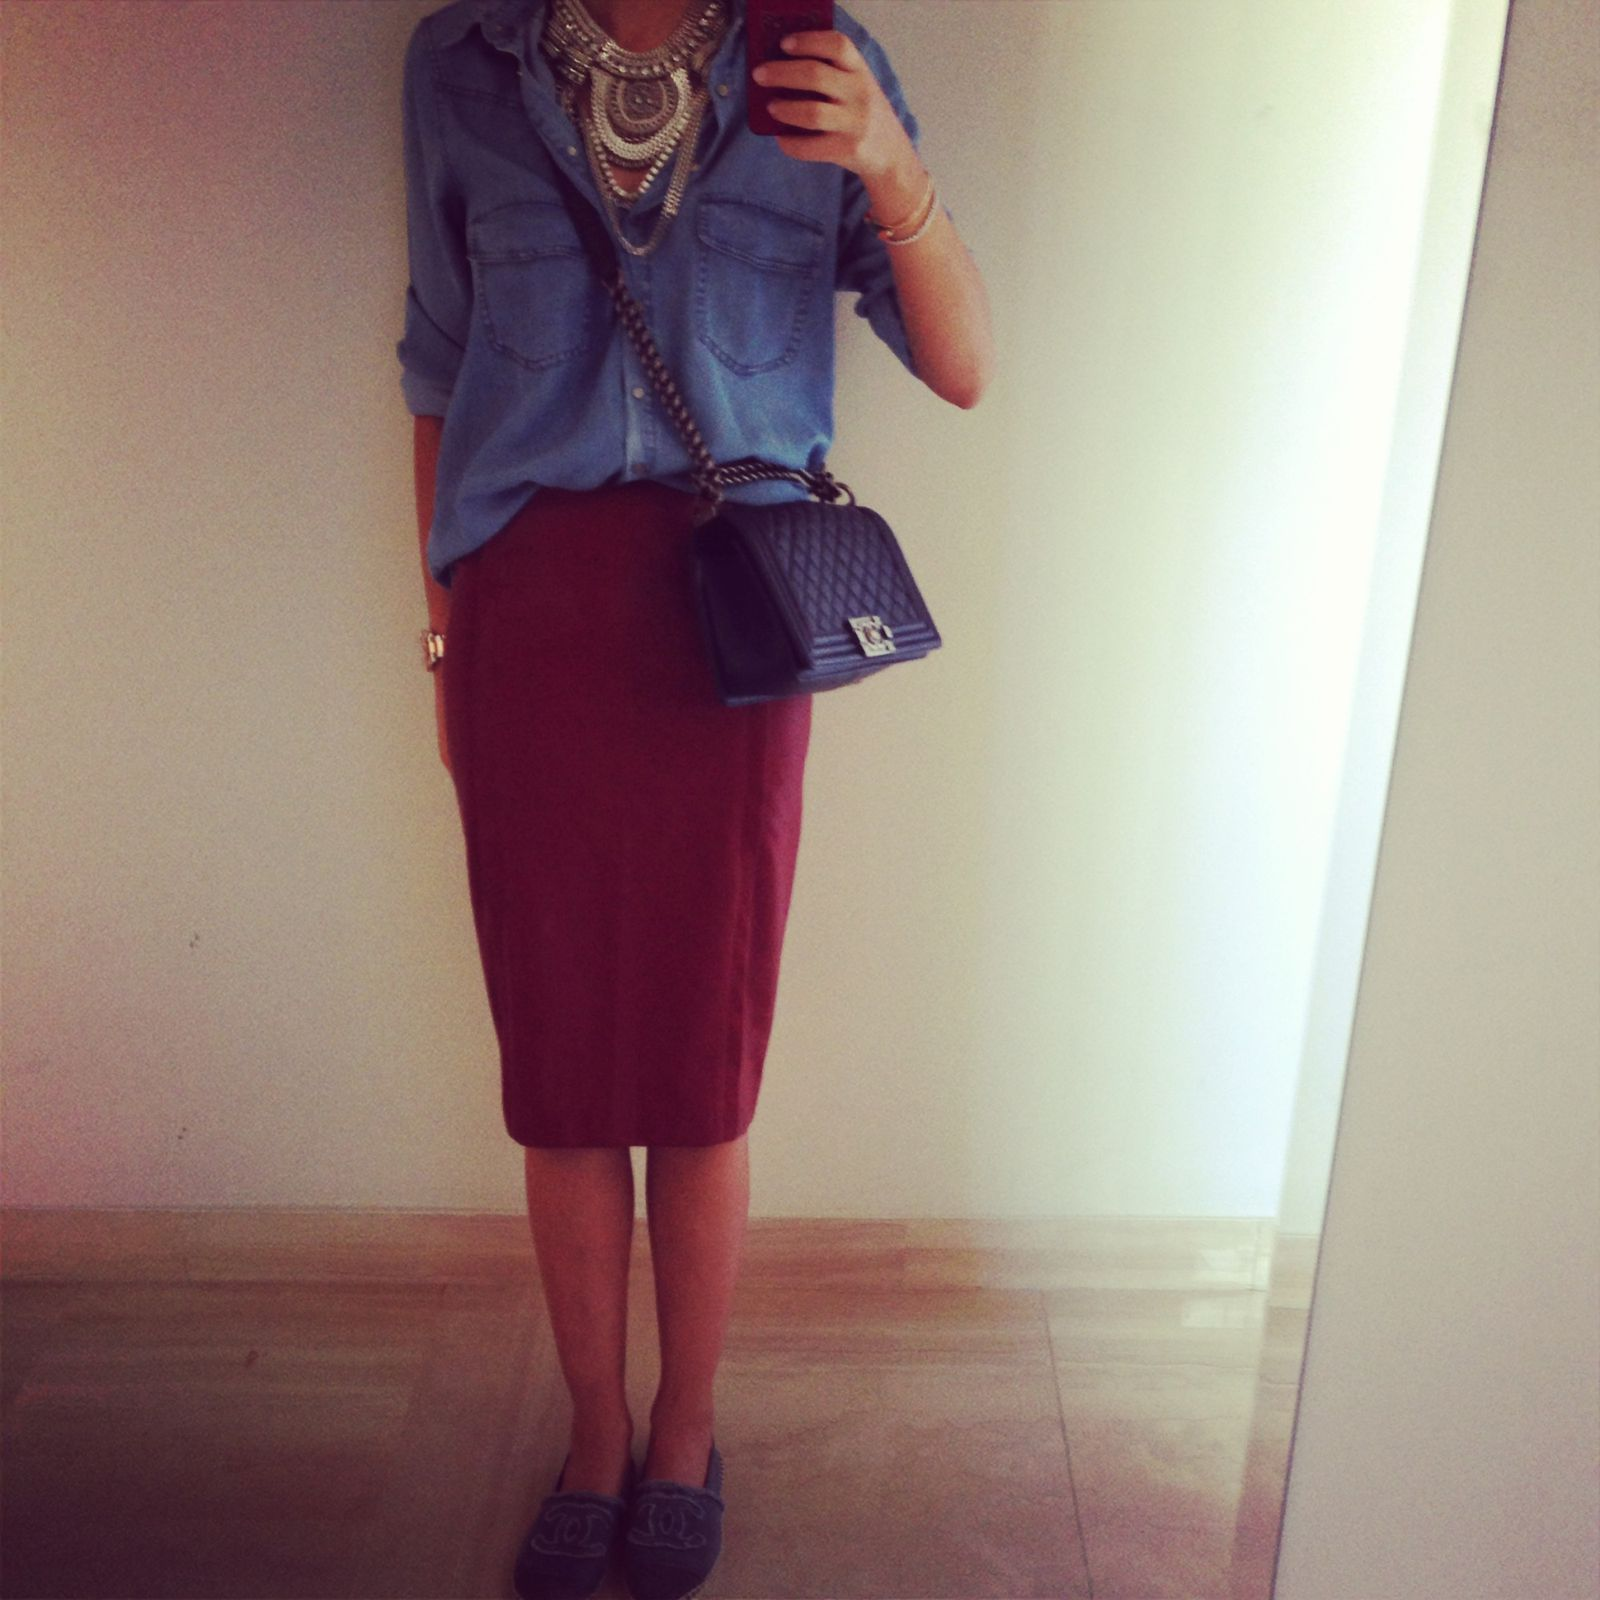 Im wearing a Zara skirt ( new collection)  and shirt , a topshop necklace  and Chanel espadrilles and bag